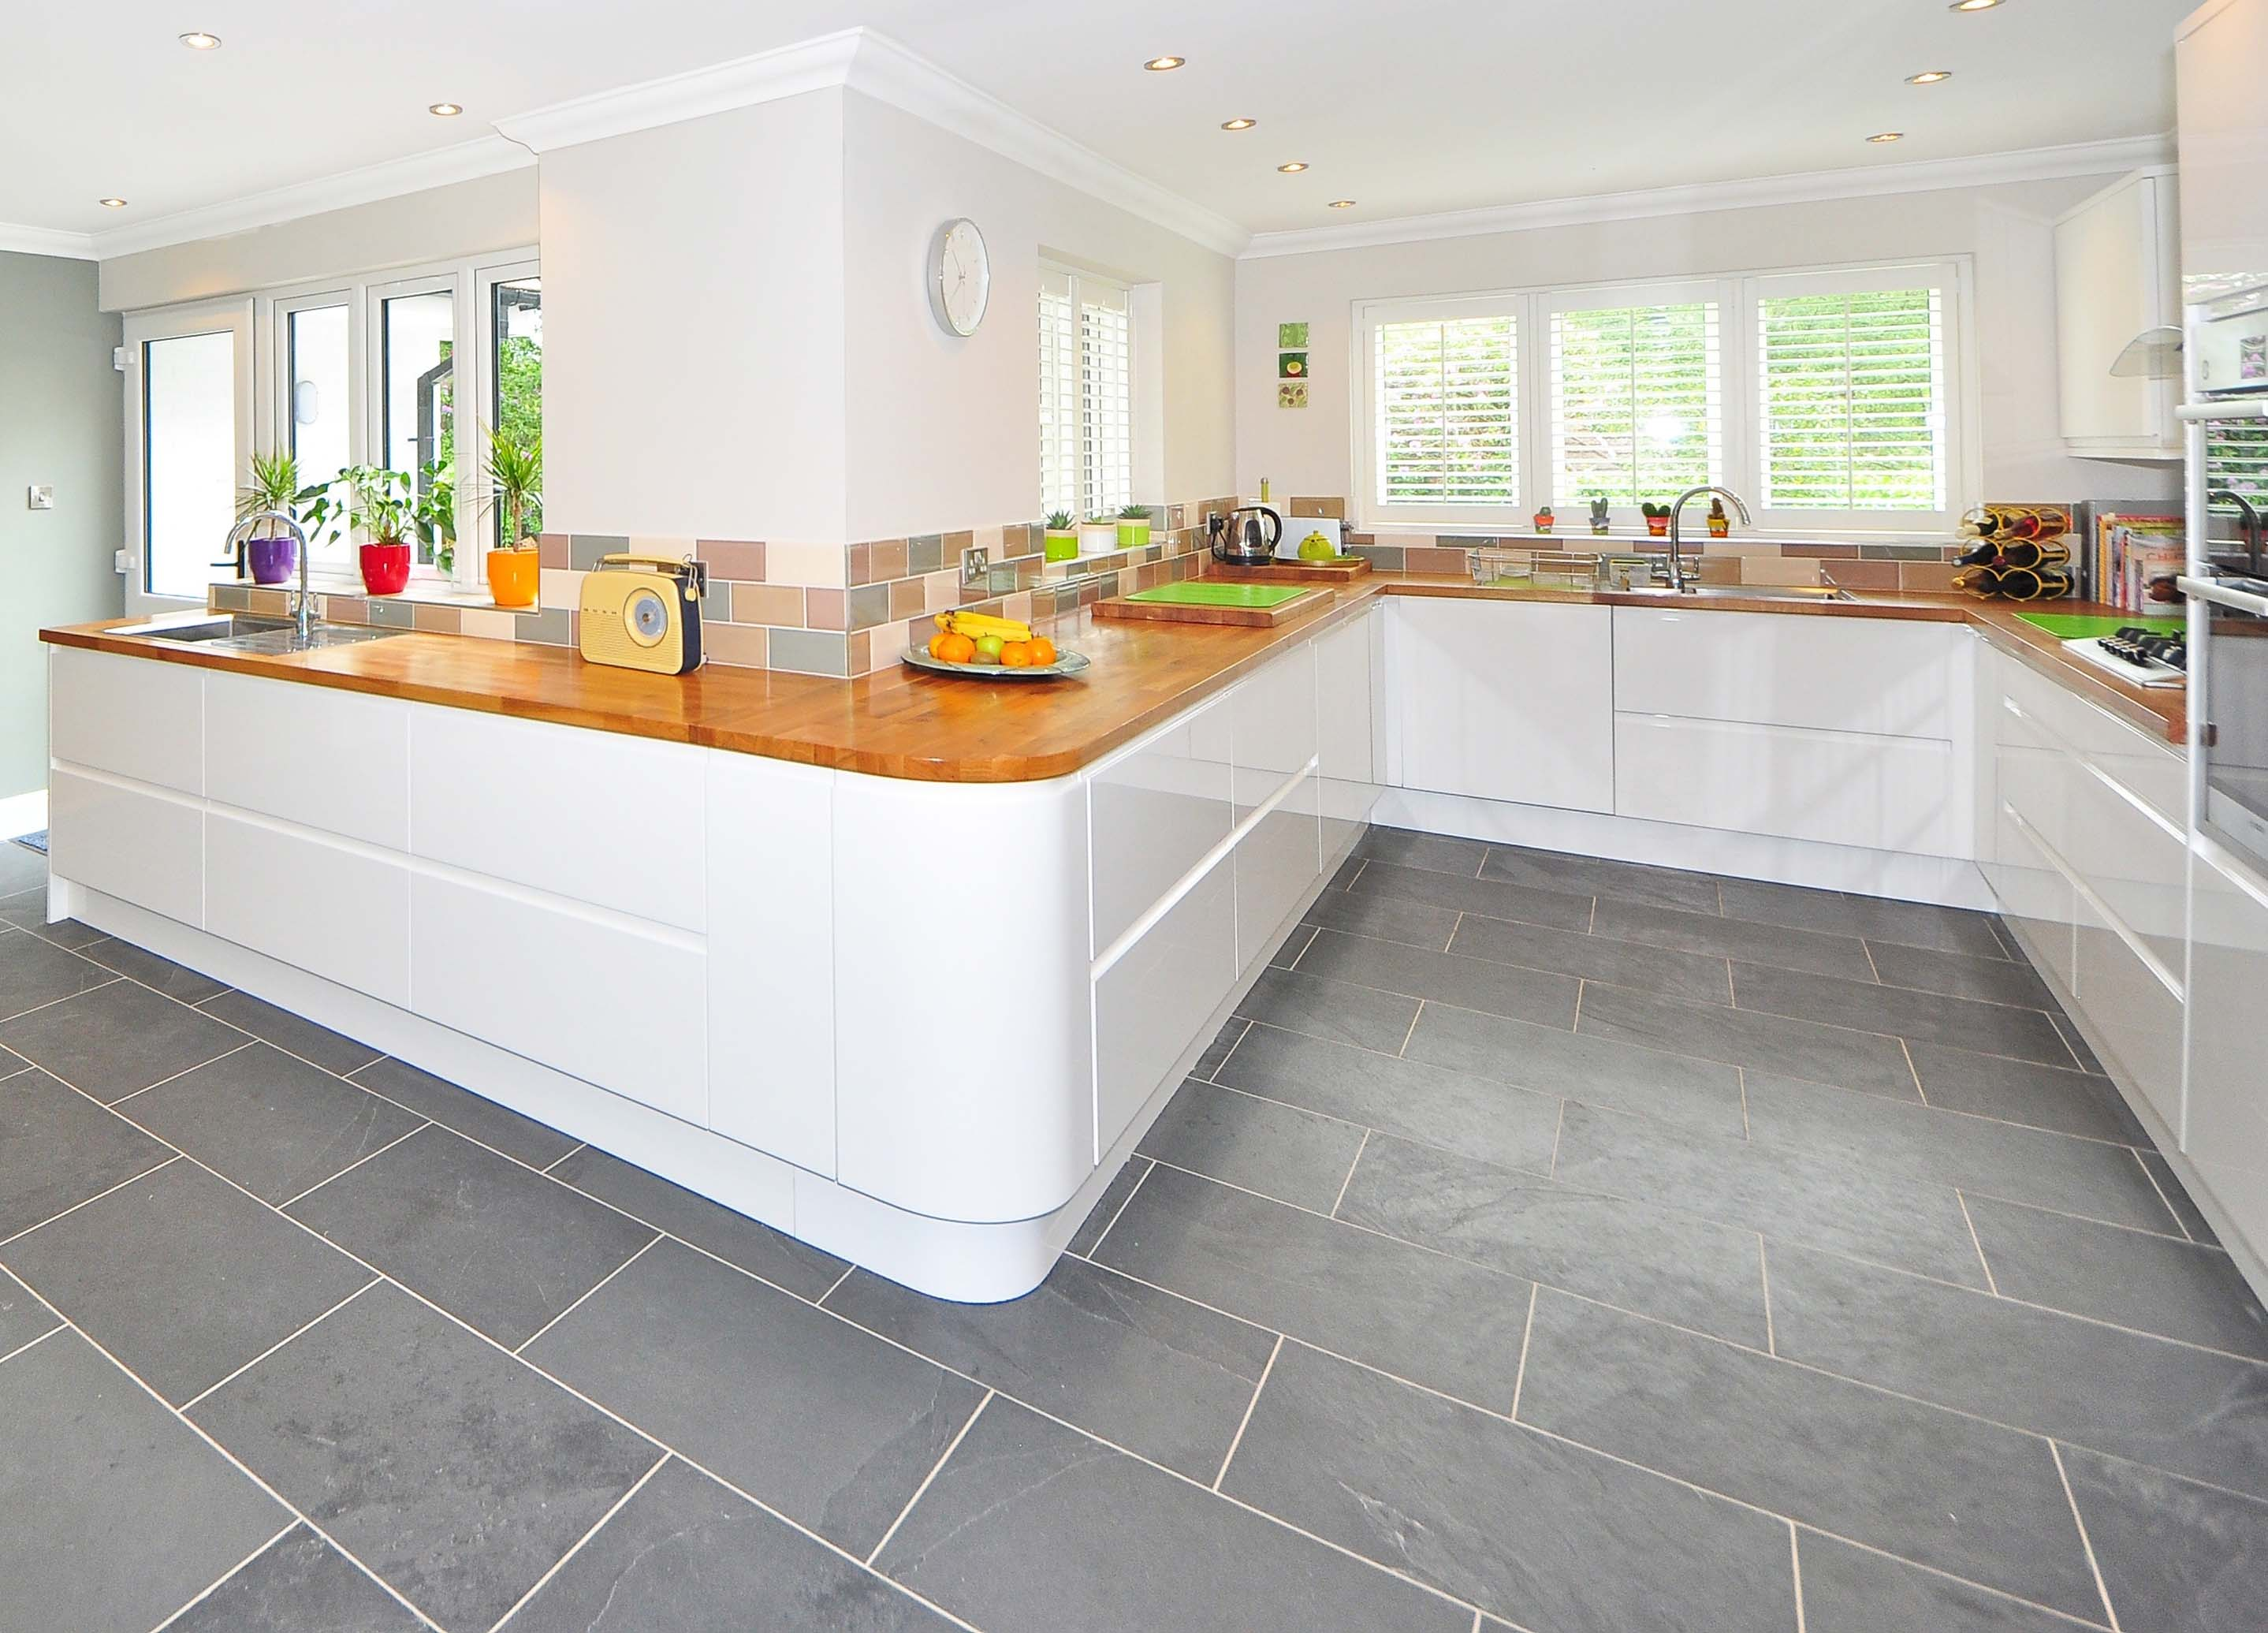 Customized Colorful Wooden Flooring for Kitchens or Lawns